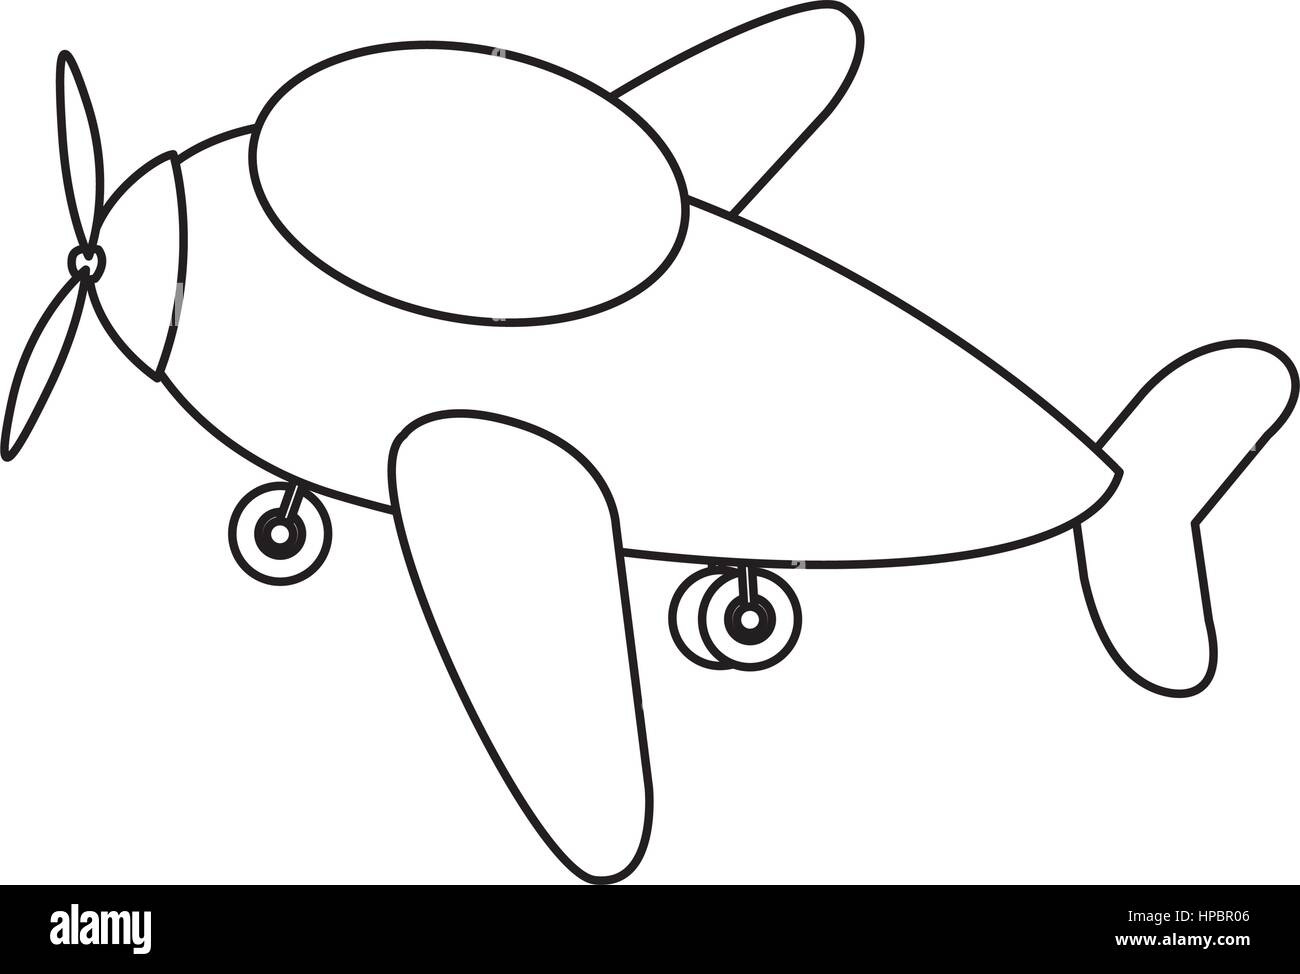 contour toy airplane fly icon - Stock Image